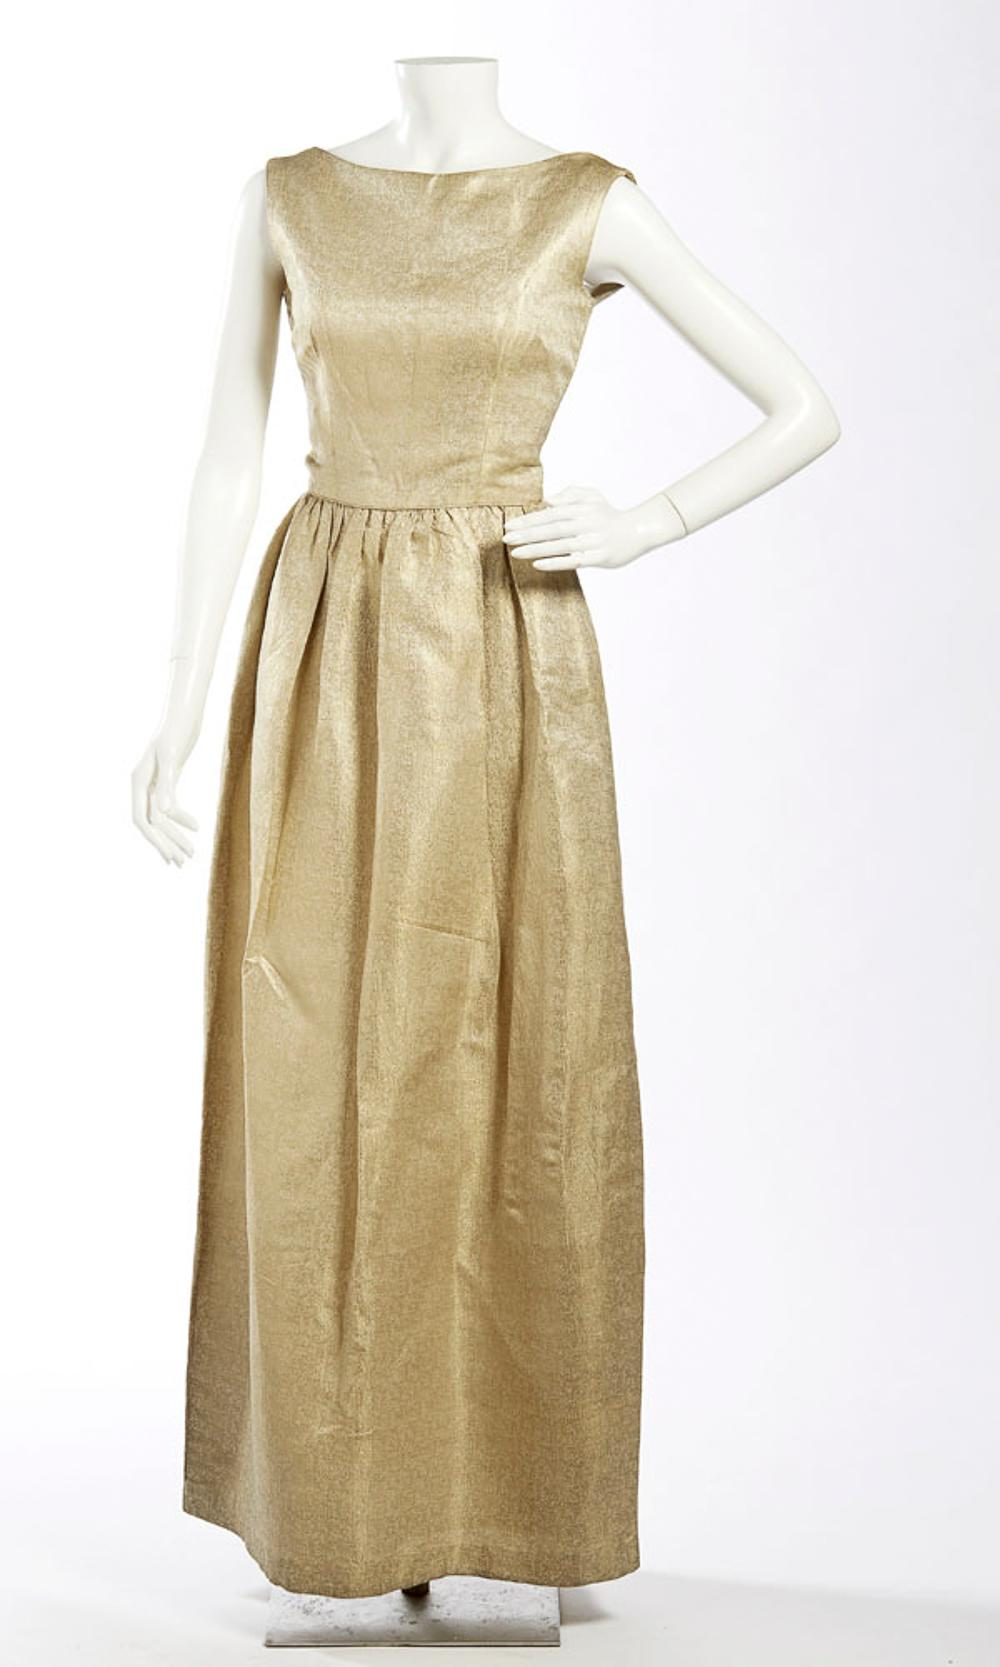 Long dress in fabric embroidered with golden thread